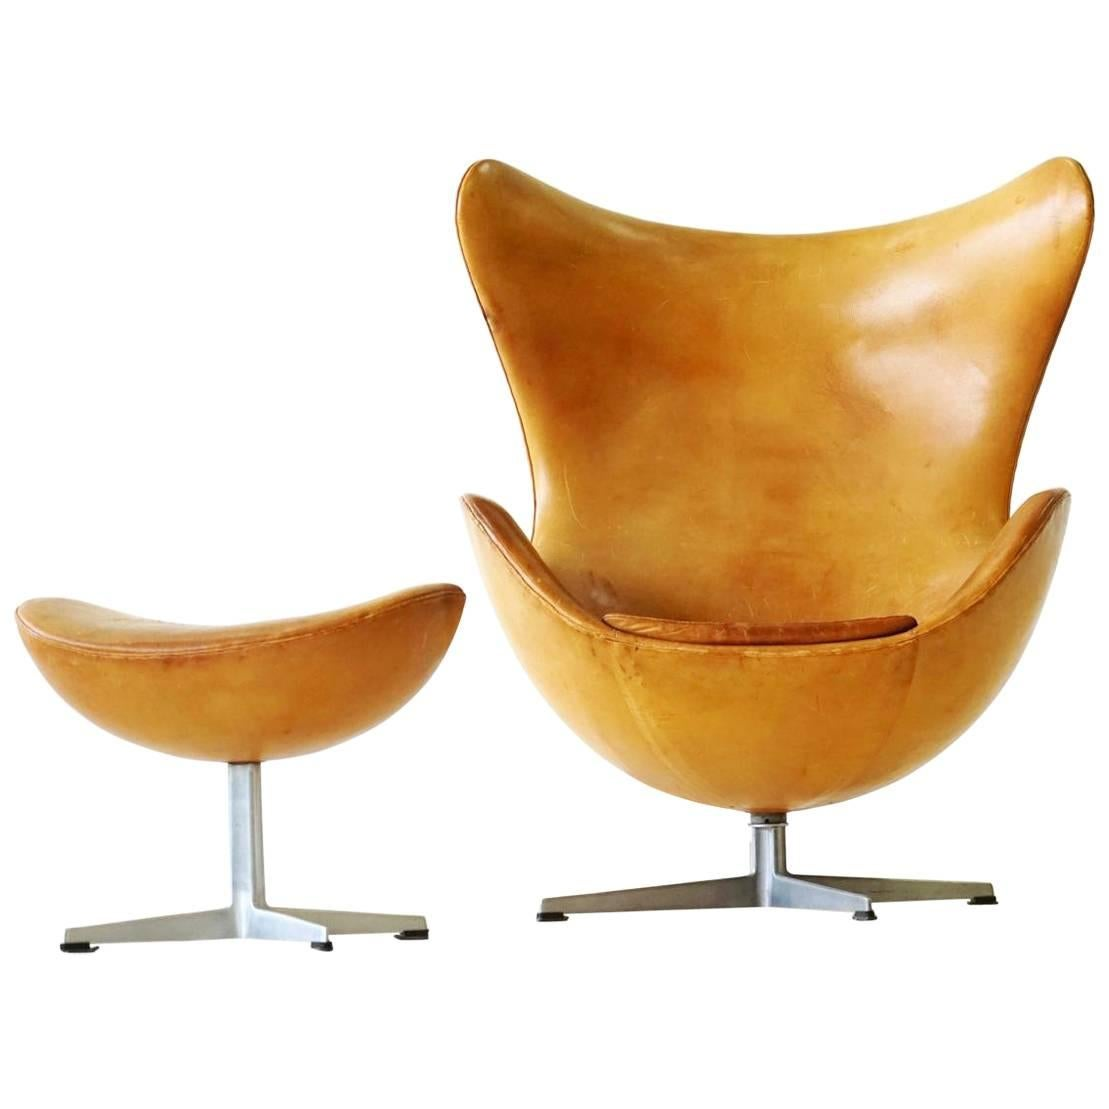 Fritz Hansen Chairs Arne Jacobsen Egg Lounge Chair And Ottoman 1960s Fritz Hansen Leather